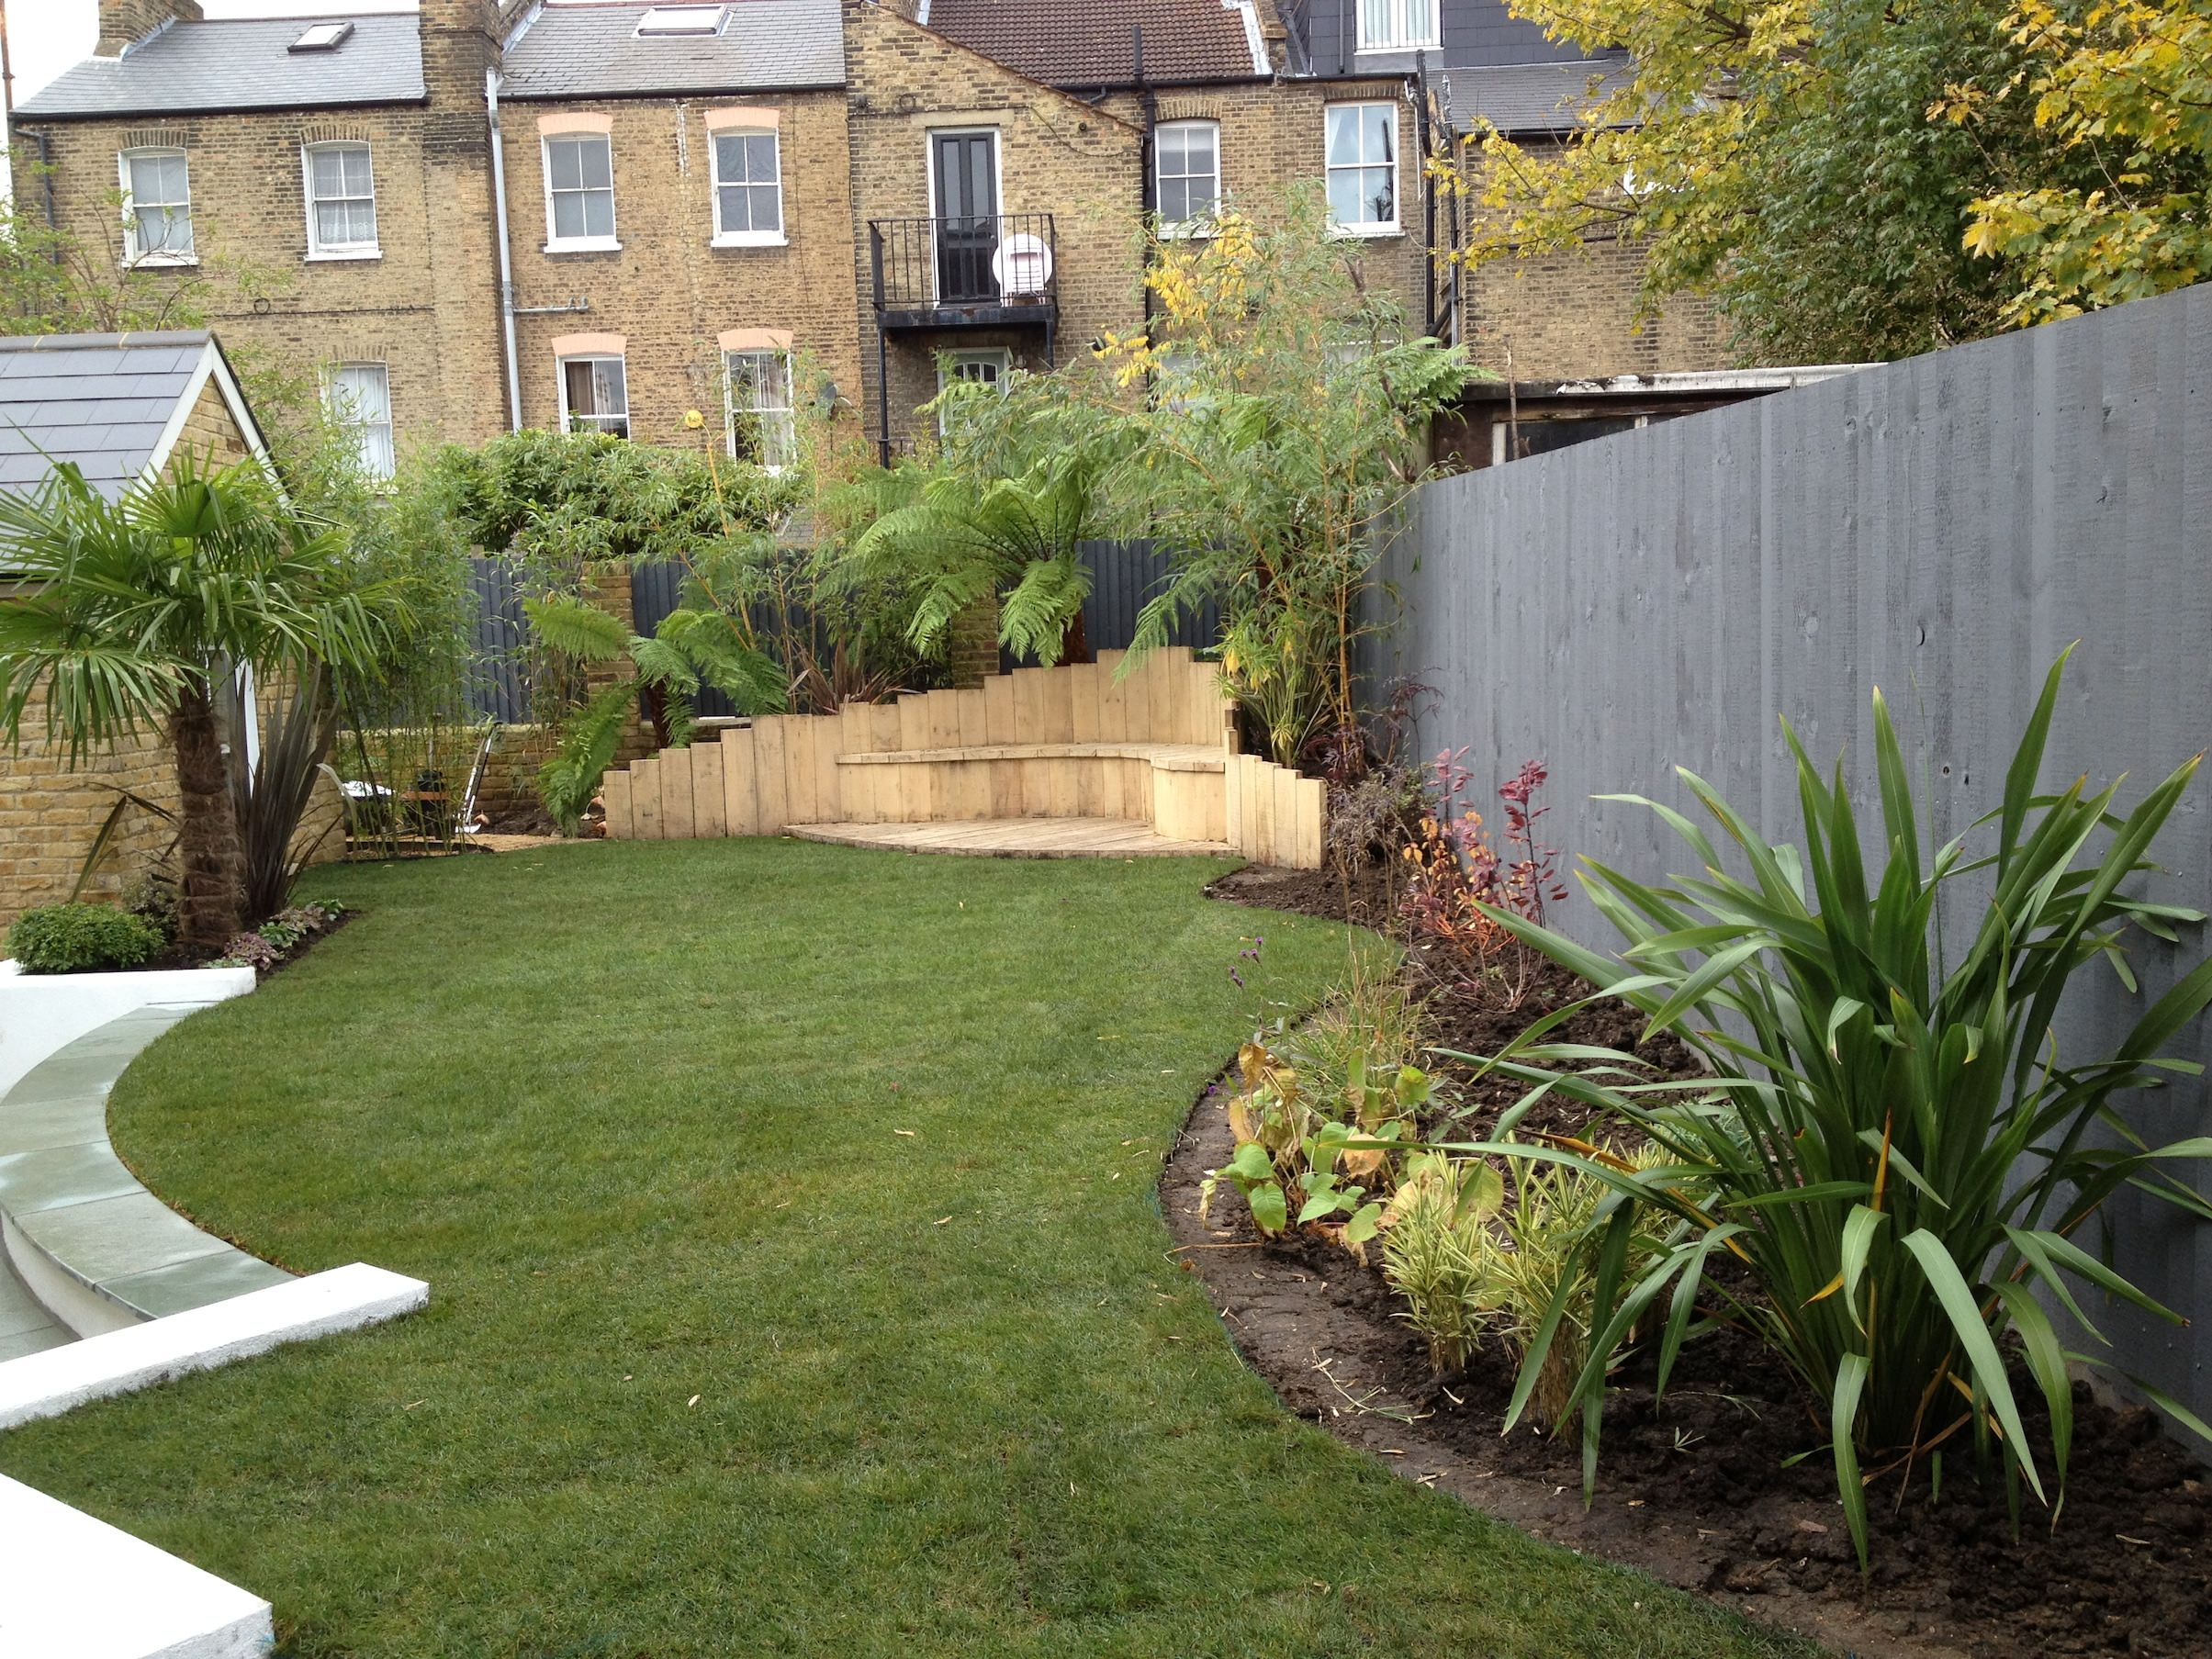 Low maintenance garden designs garden club london for Garden design layout ideas